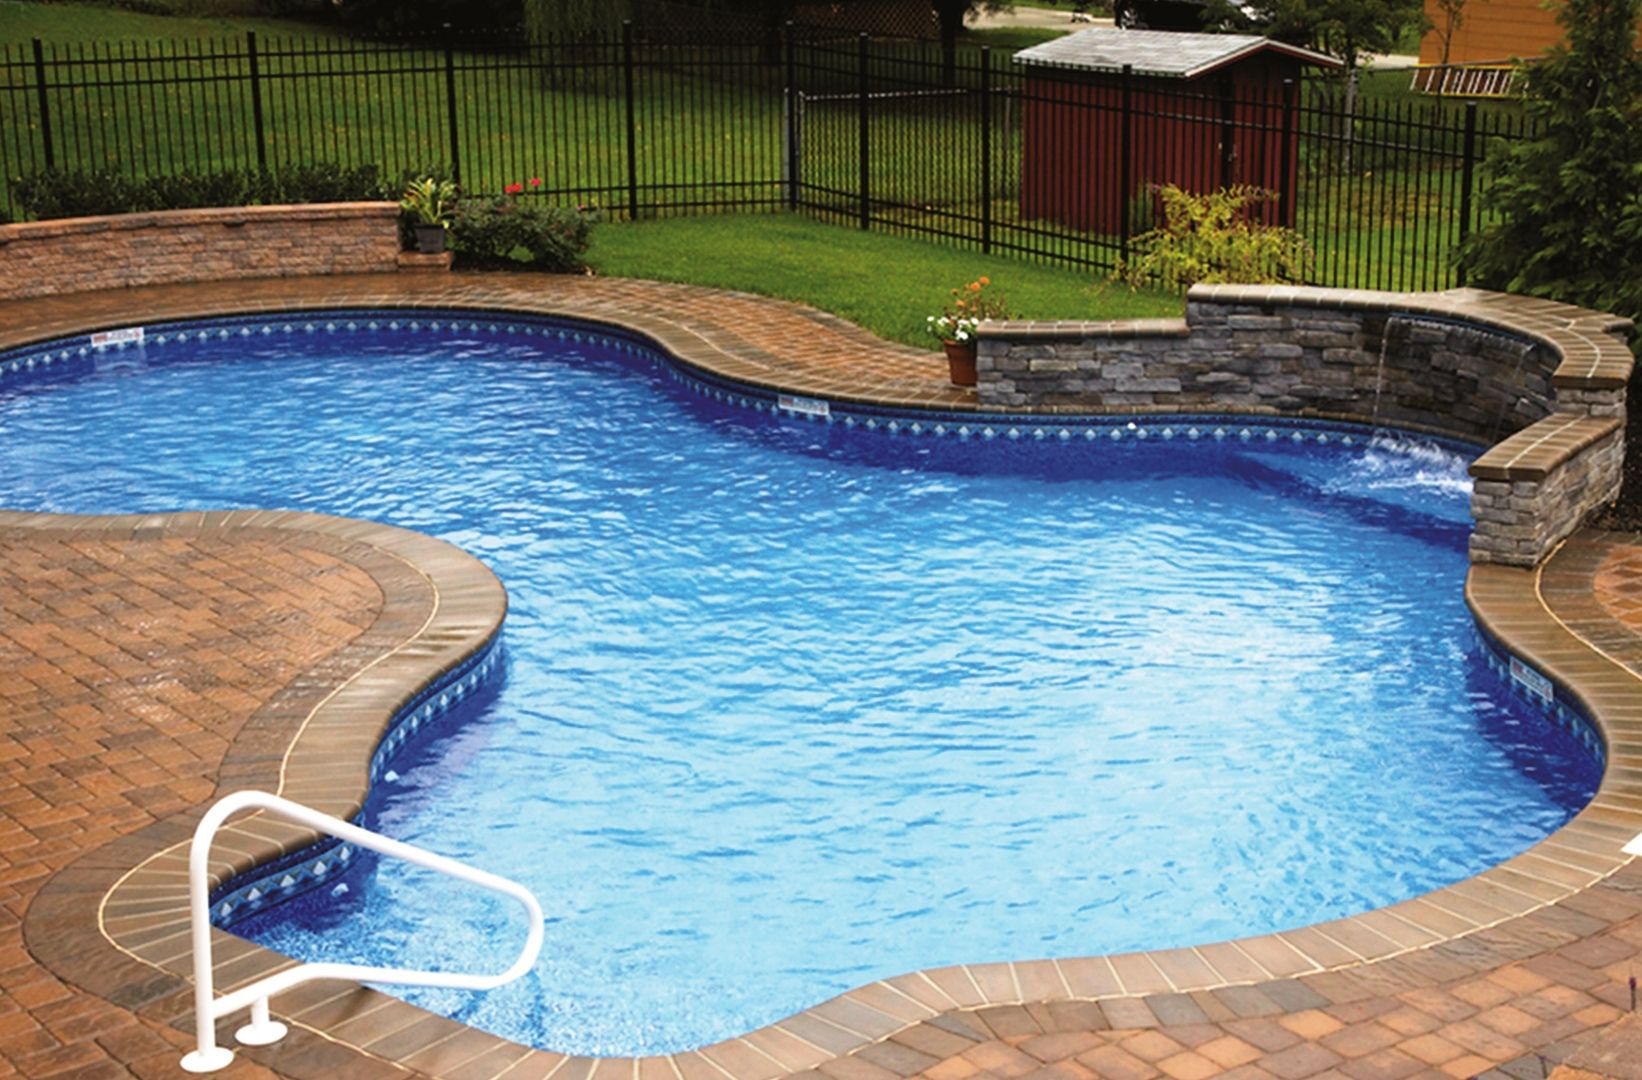 Back yard swimming pool ideas swimming pool design for Pictures of backyard pools